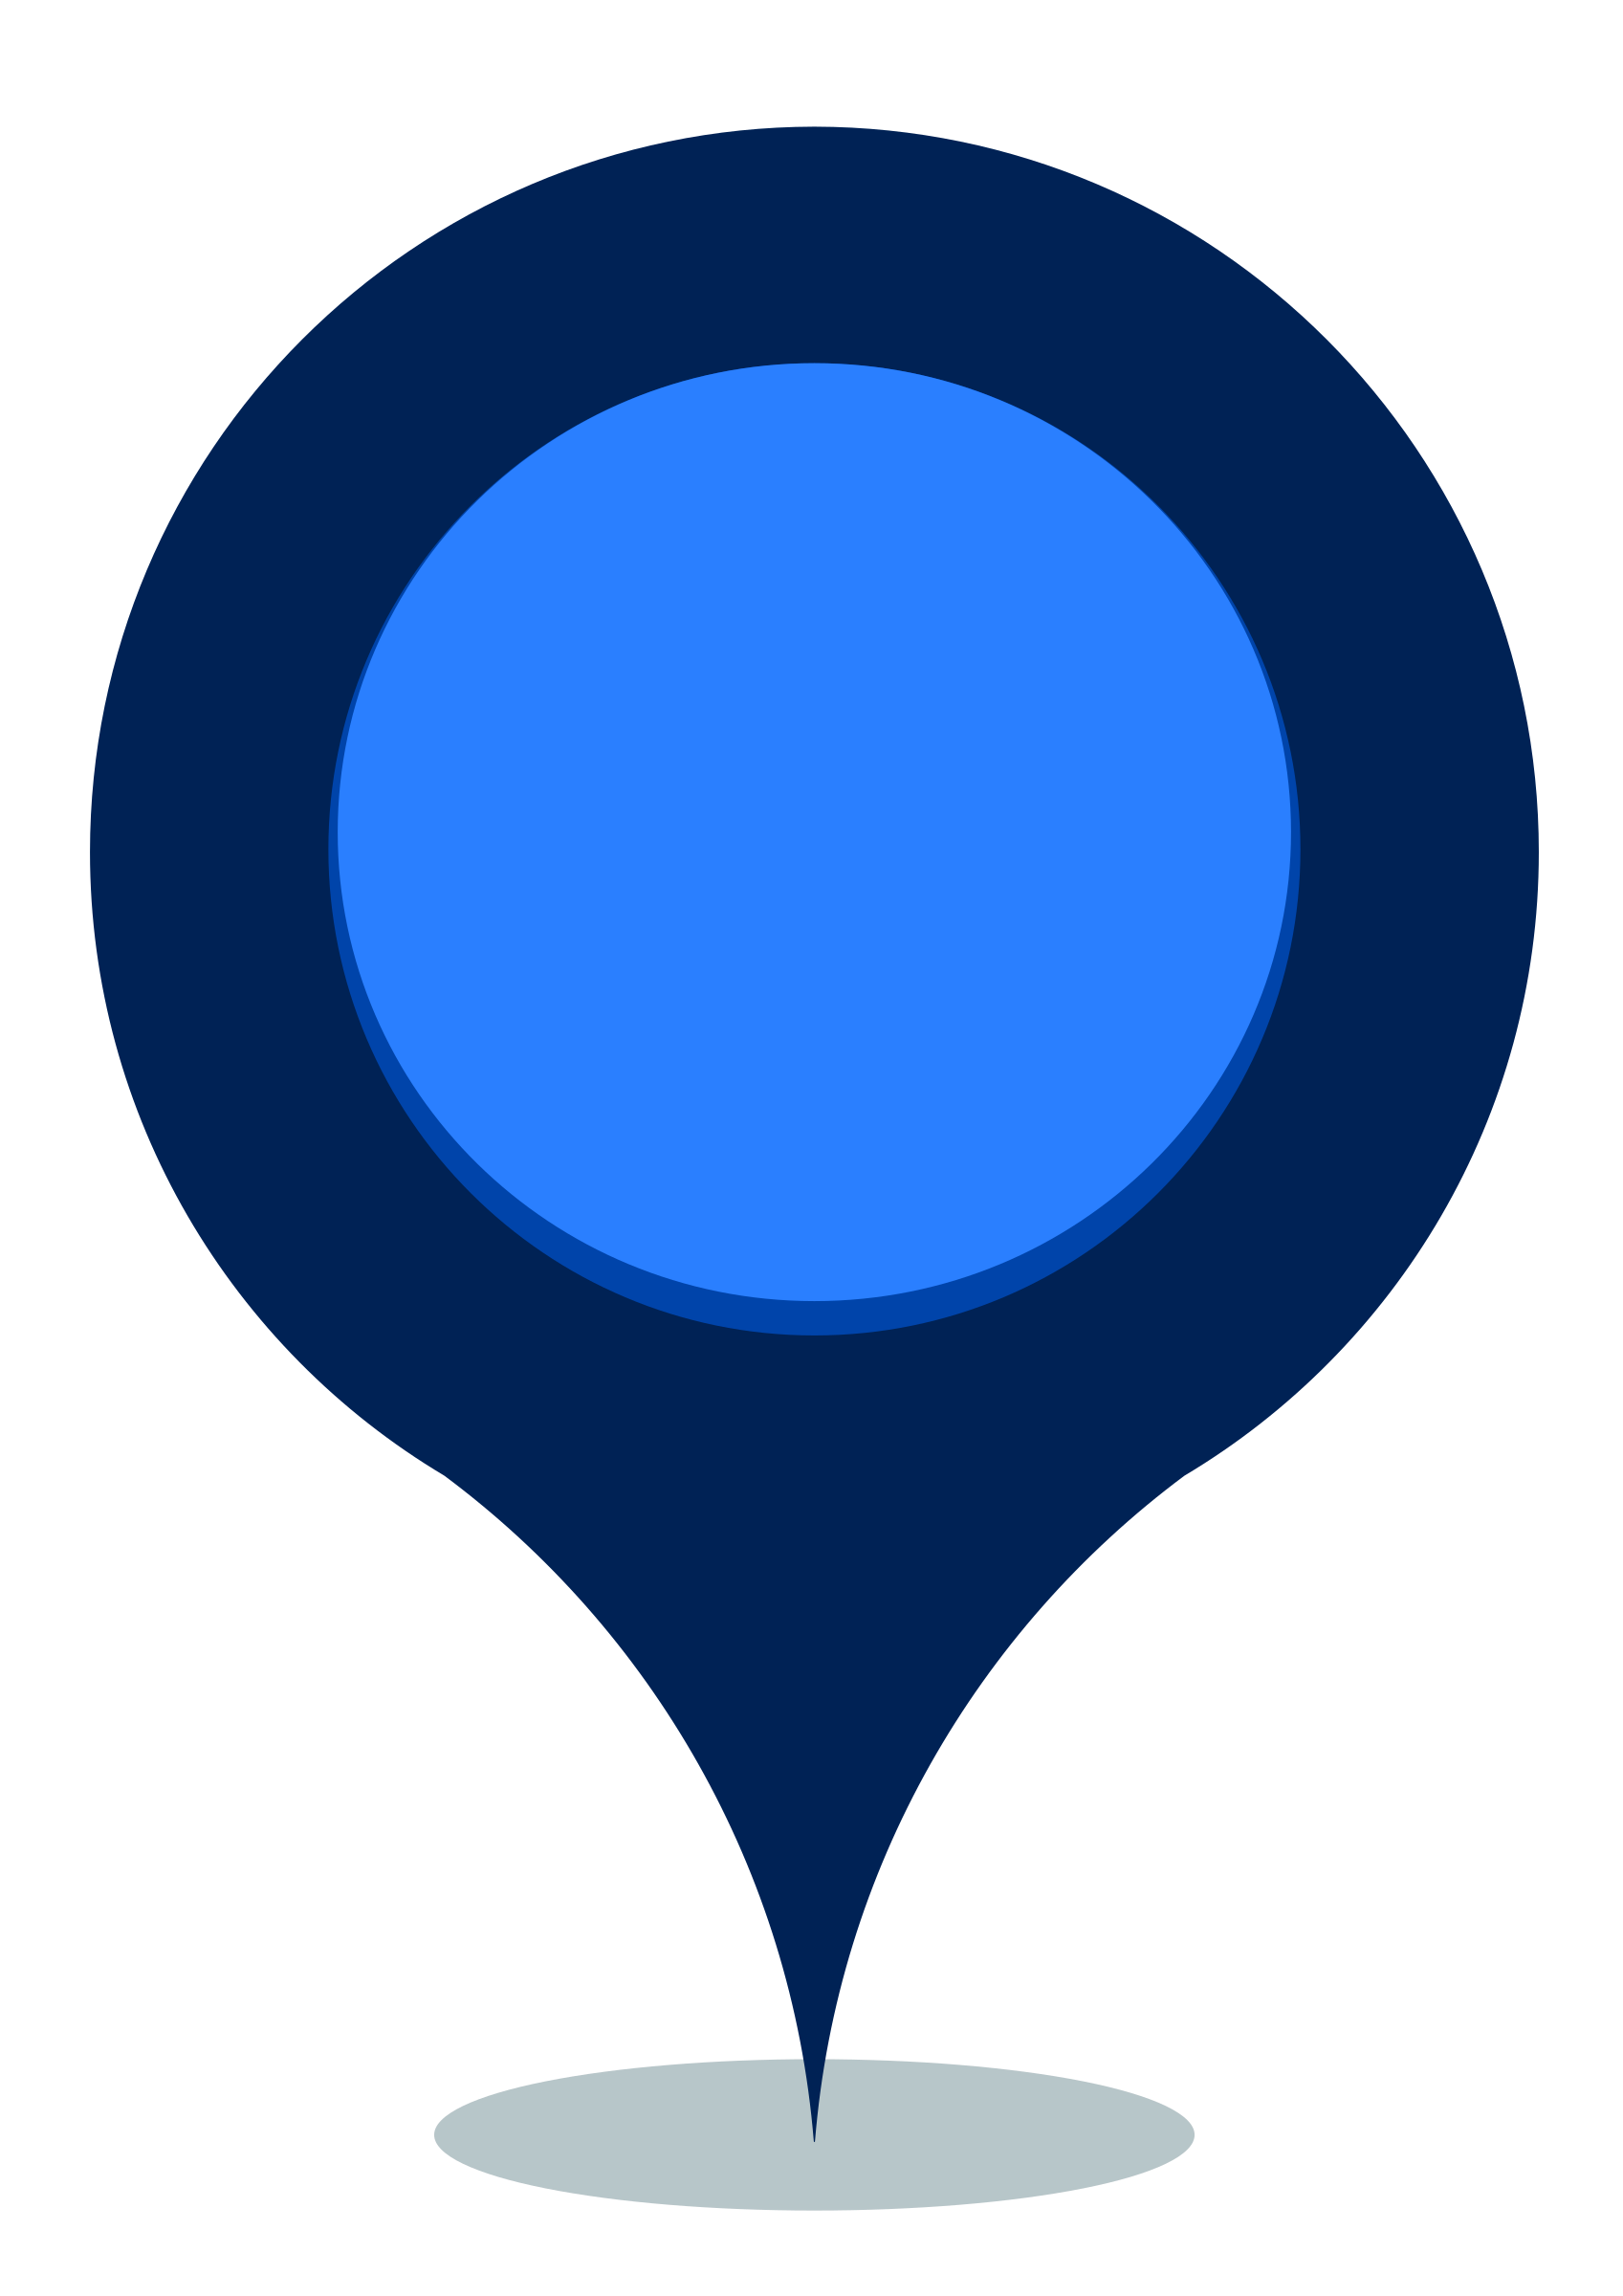 Blue Map Pin Png image #39469